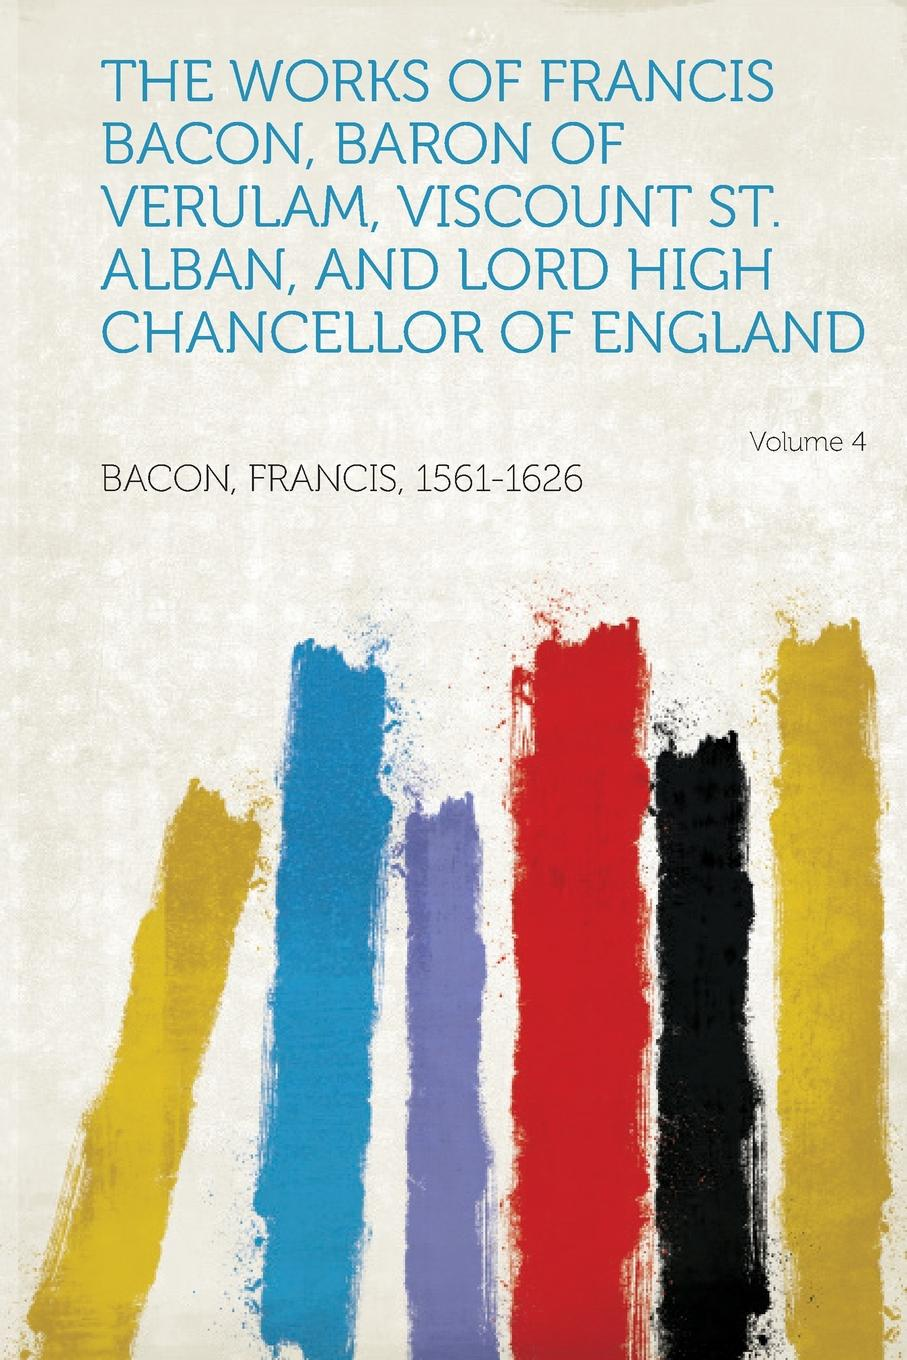 Francis Bacon The Works of Francis Bacon, Baron of Verulam, Viscount St. Alban, and Lord High Chancellor of England Volume 4 фрэнсис бэкон the works of francis bacon volume 11